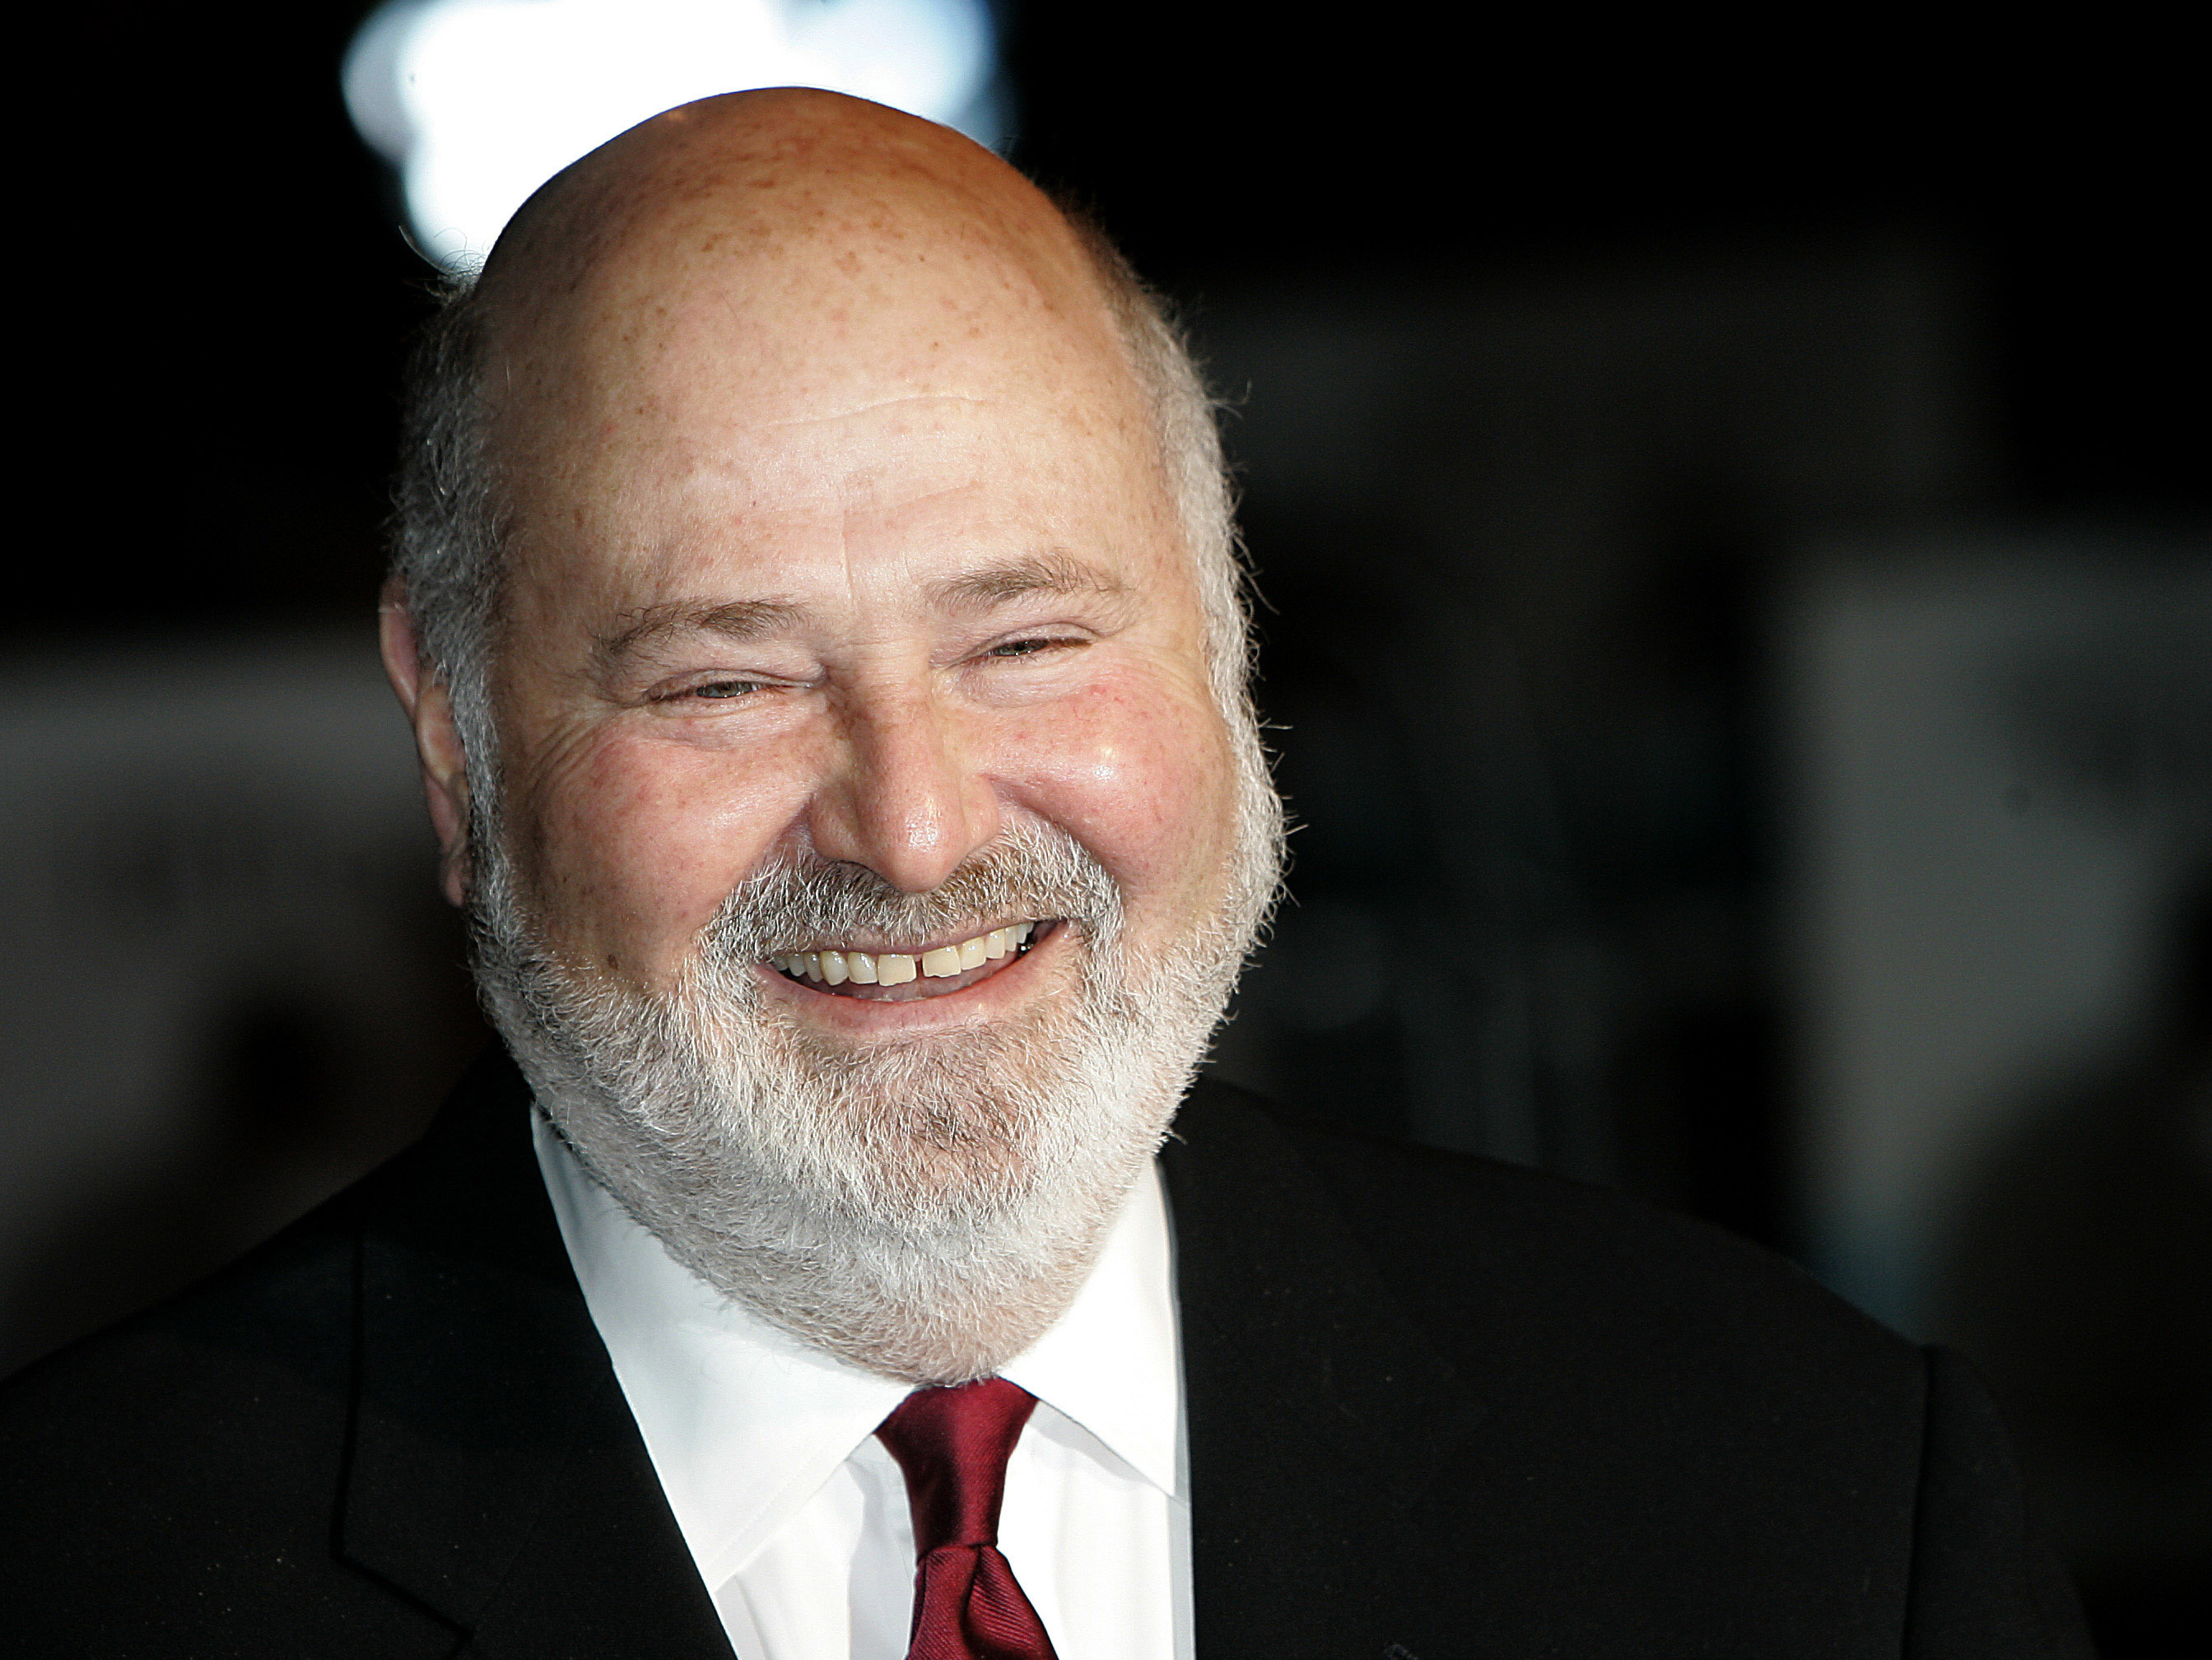 rob reiner stand by merob reiner wiki, rob reiner tv tropes, rob reiner wolf of wall street, rob reiner butter, rob reiner film, rob reiner, rob reiner movies, rob reiner imdb, rob reiner quit smoking, rob reiner movies list, rob reiner stand by me, rob reiner spinal tap, rob reiner young, rob reiner lbj, rob reiner anvil, rob reiner being charlie, rob reiner net worth, rob reiner all in the family, rob reiner's mock rock band, rob reiner biography